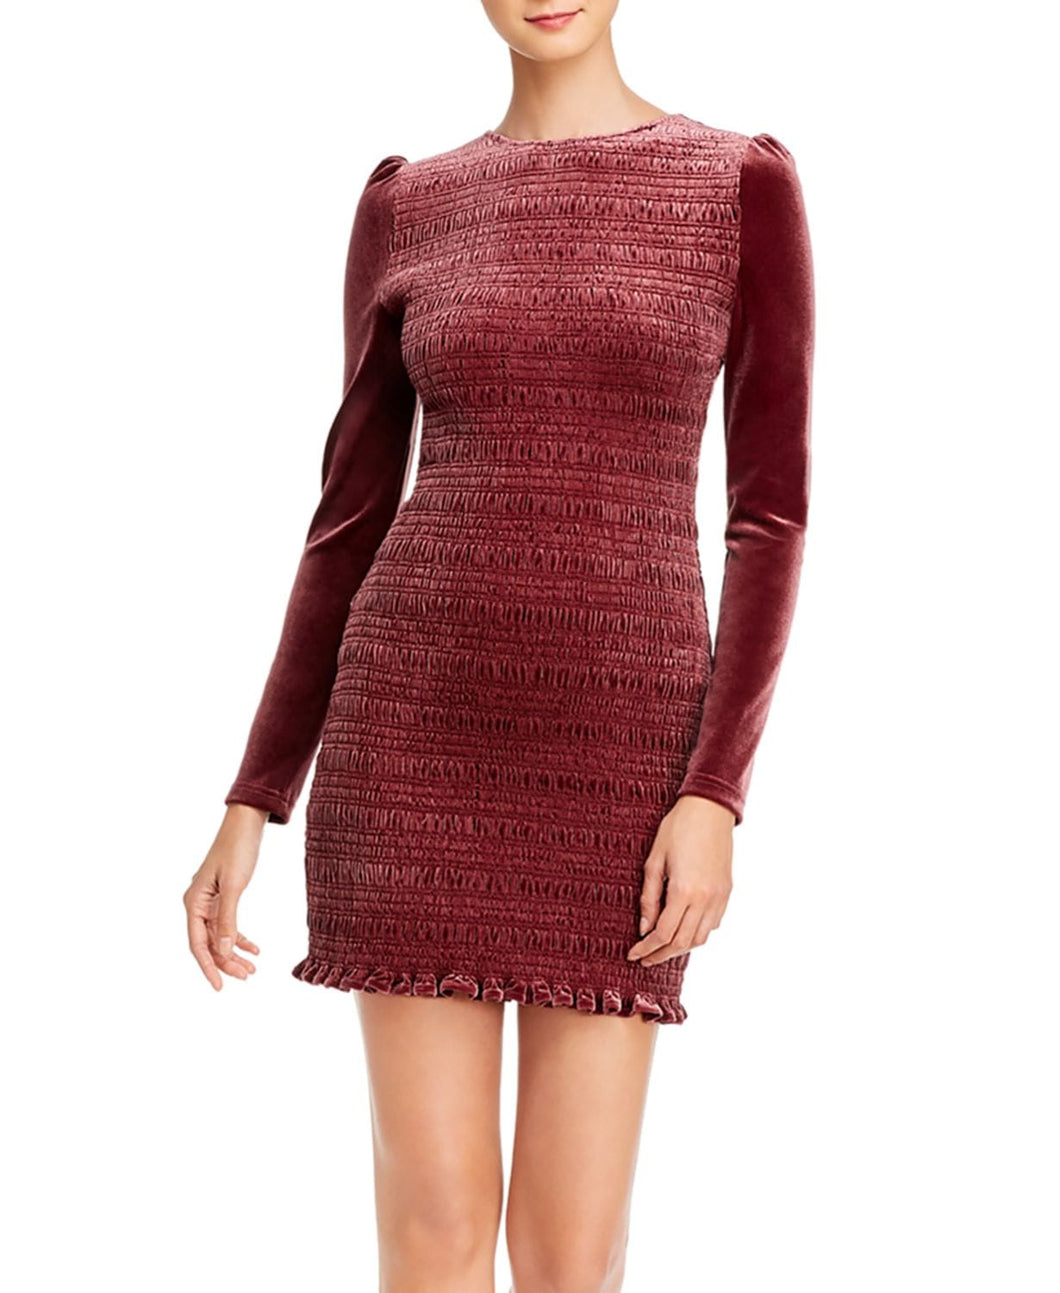 Aqua Women's Wine Velvet Smocked Puff Sleeve Mini Dress